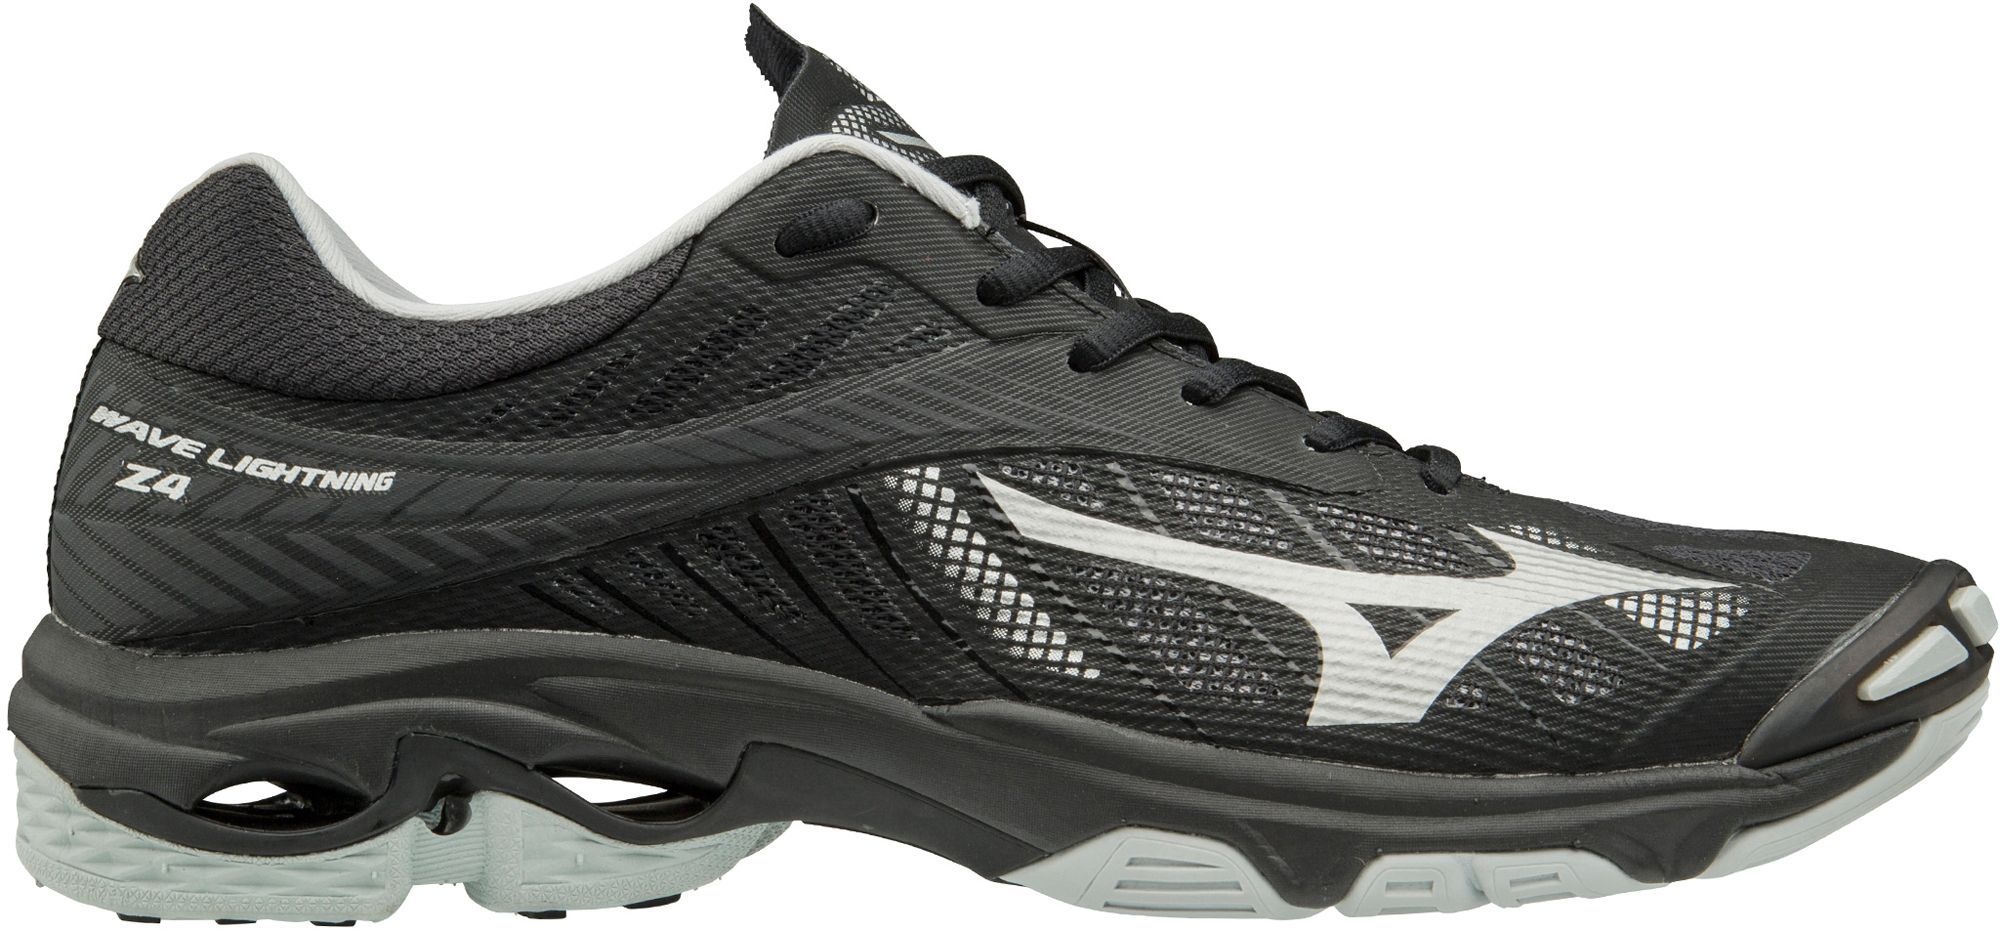 Mizuno Men's Wave Lightning Z4 Volleyball Shoes | Volleyball